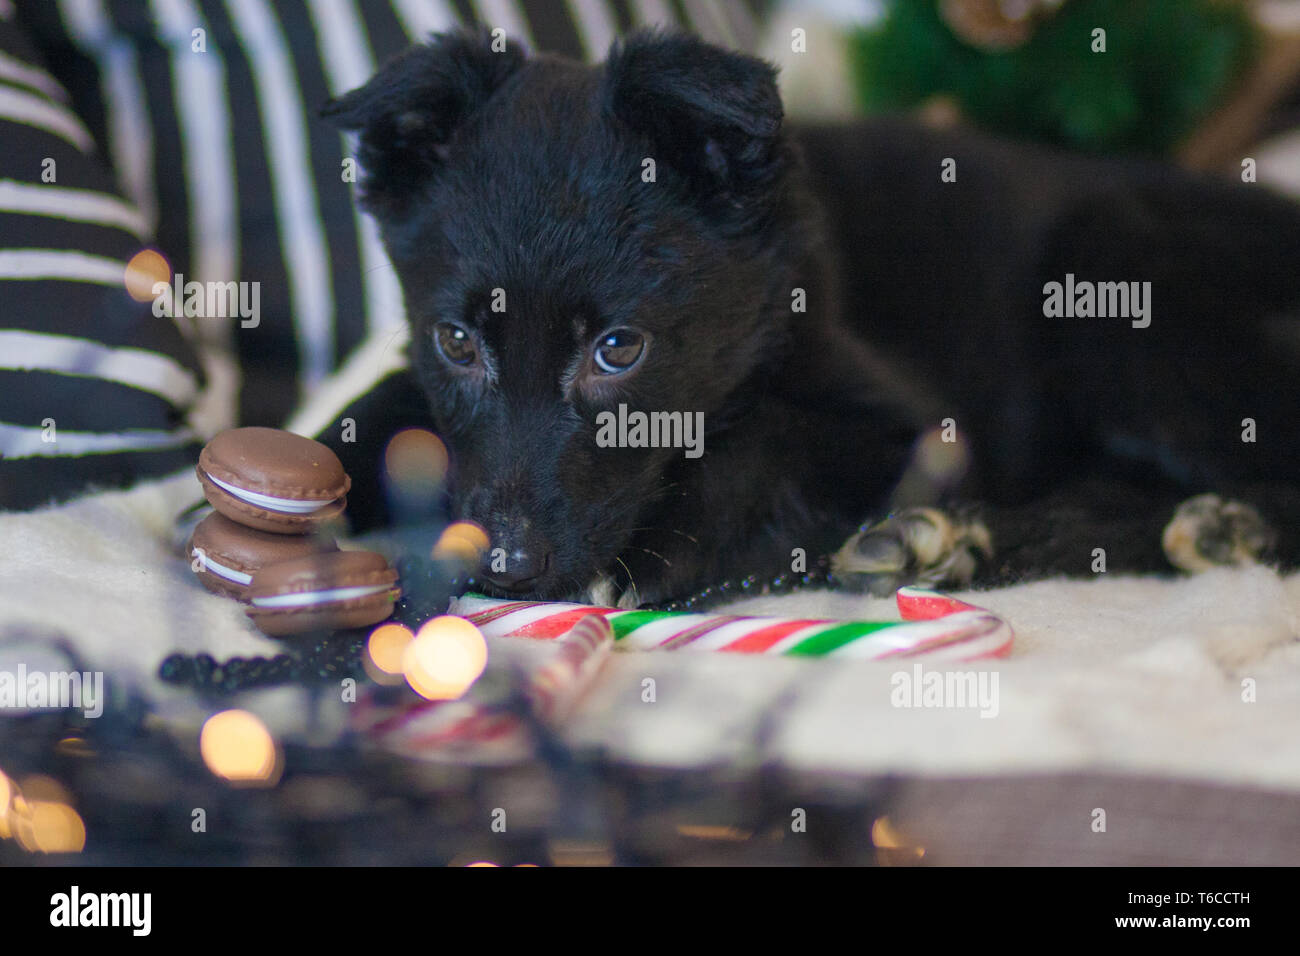 Christmas dog concept. Black dog. Puppy animals. New year decoration holiday. Christmas bauble happiness. - Stock Image